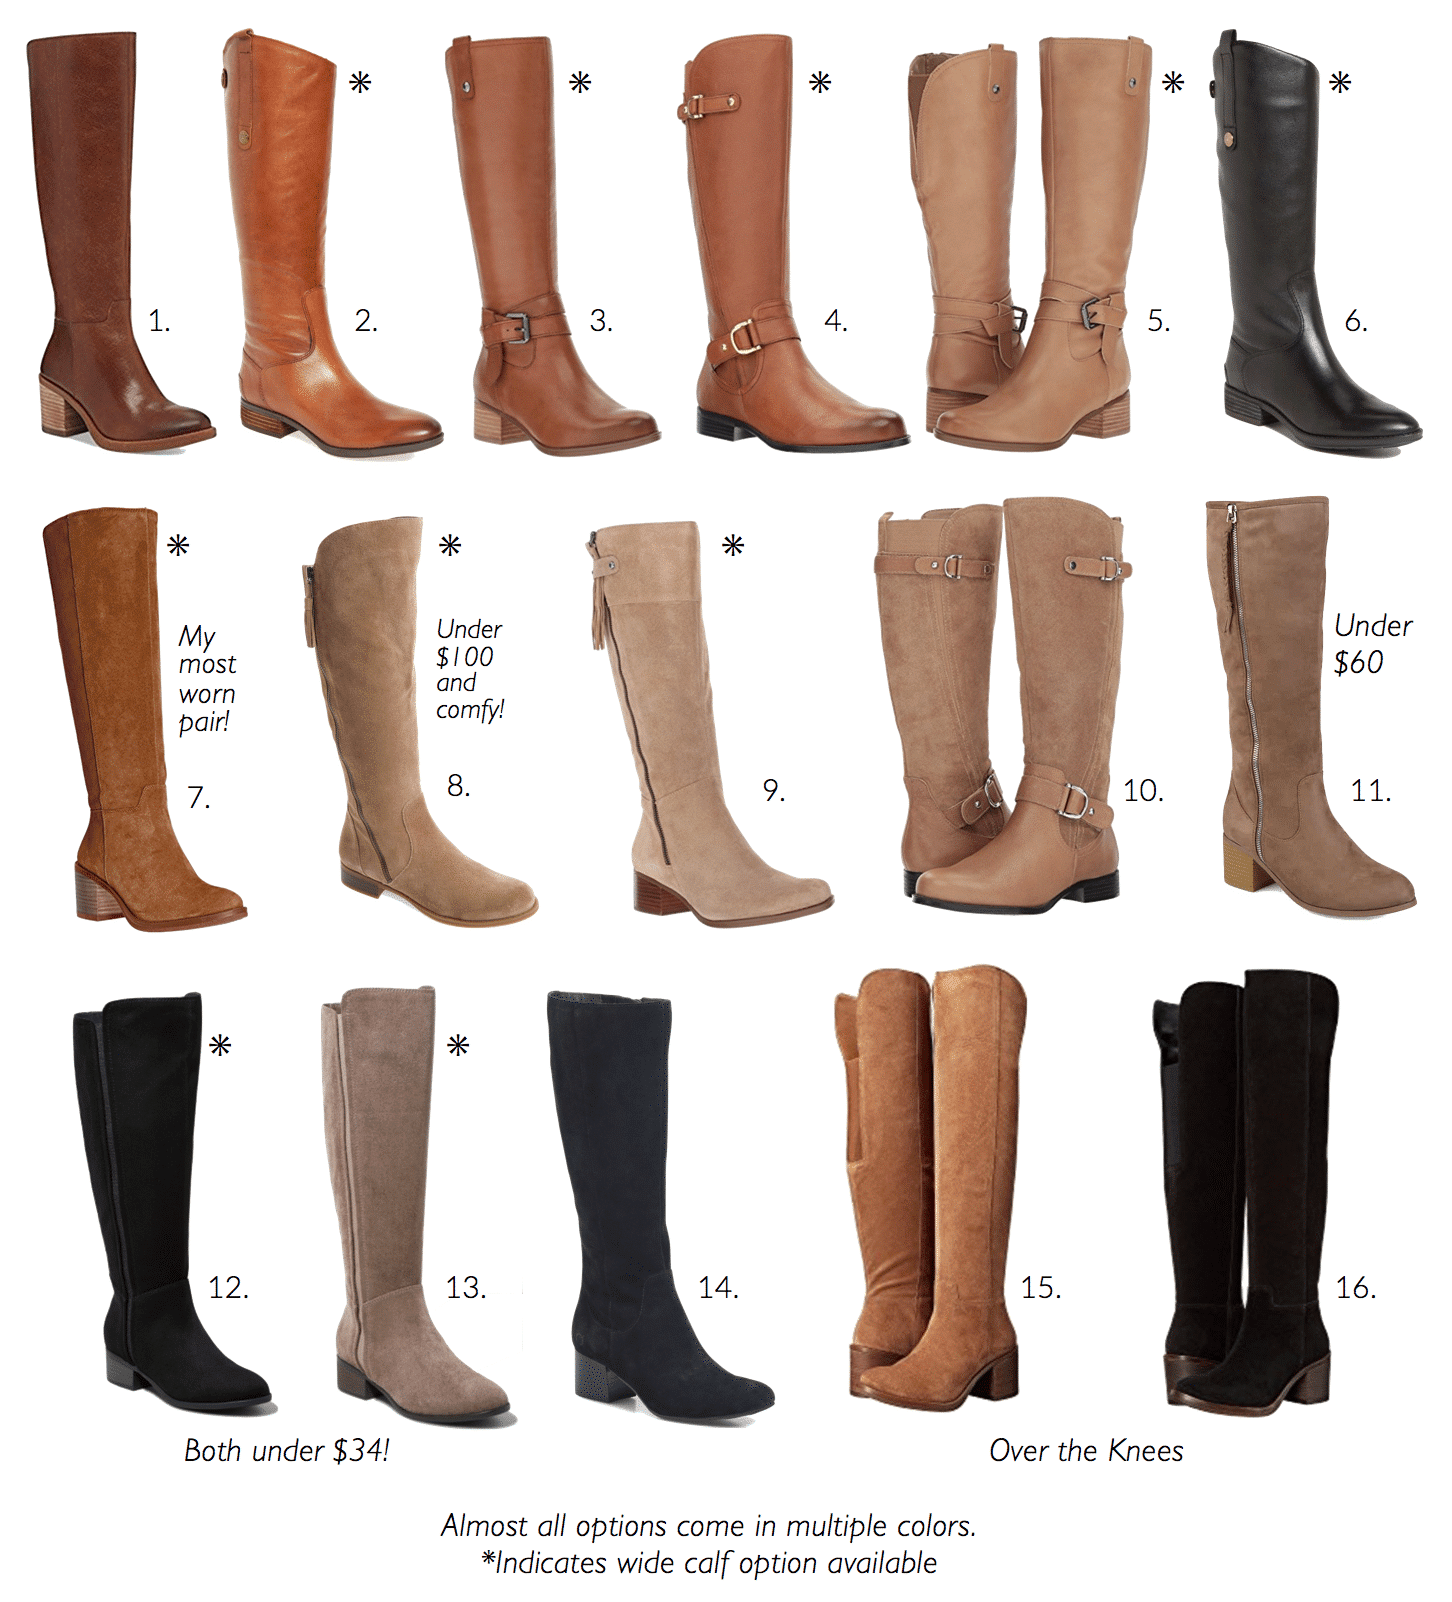 Tips For Buying Boots 16 Tall Boots Regular And Wide Calf Options